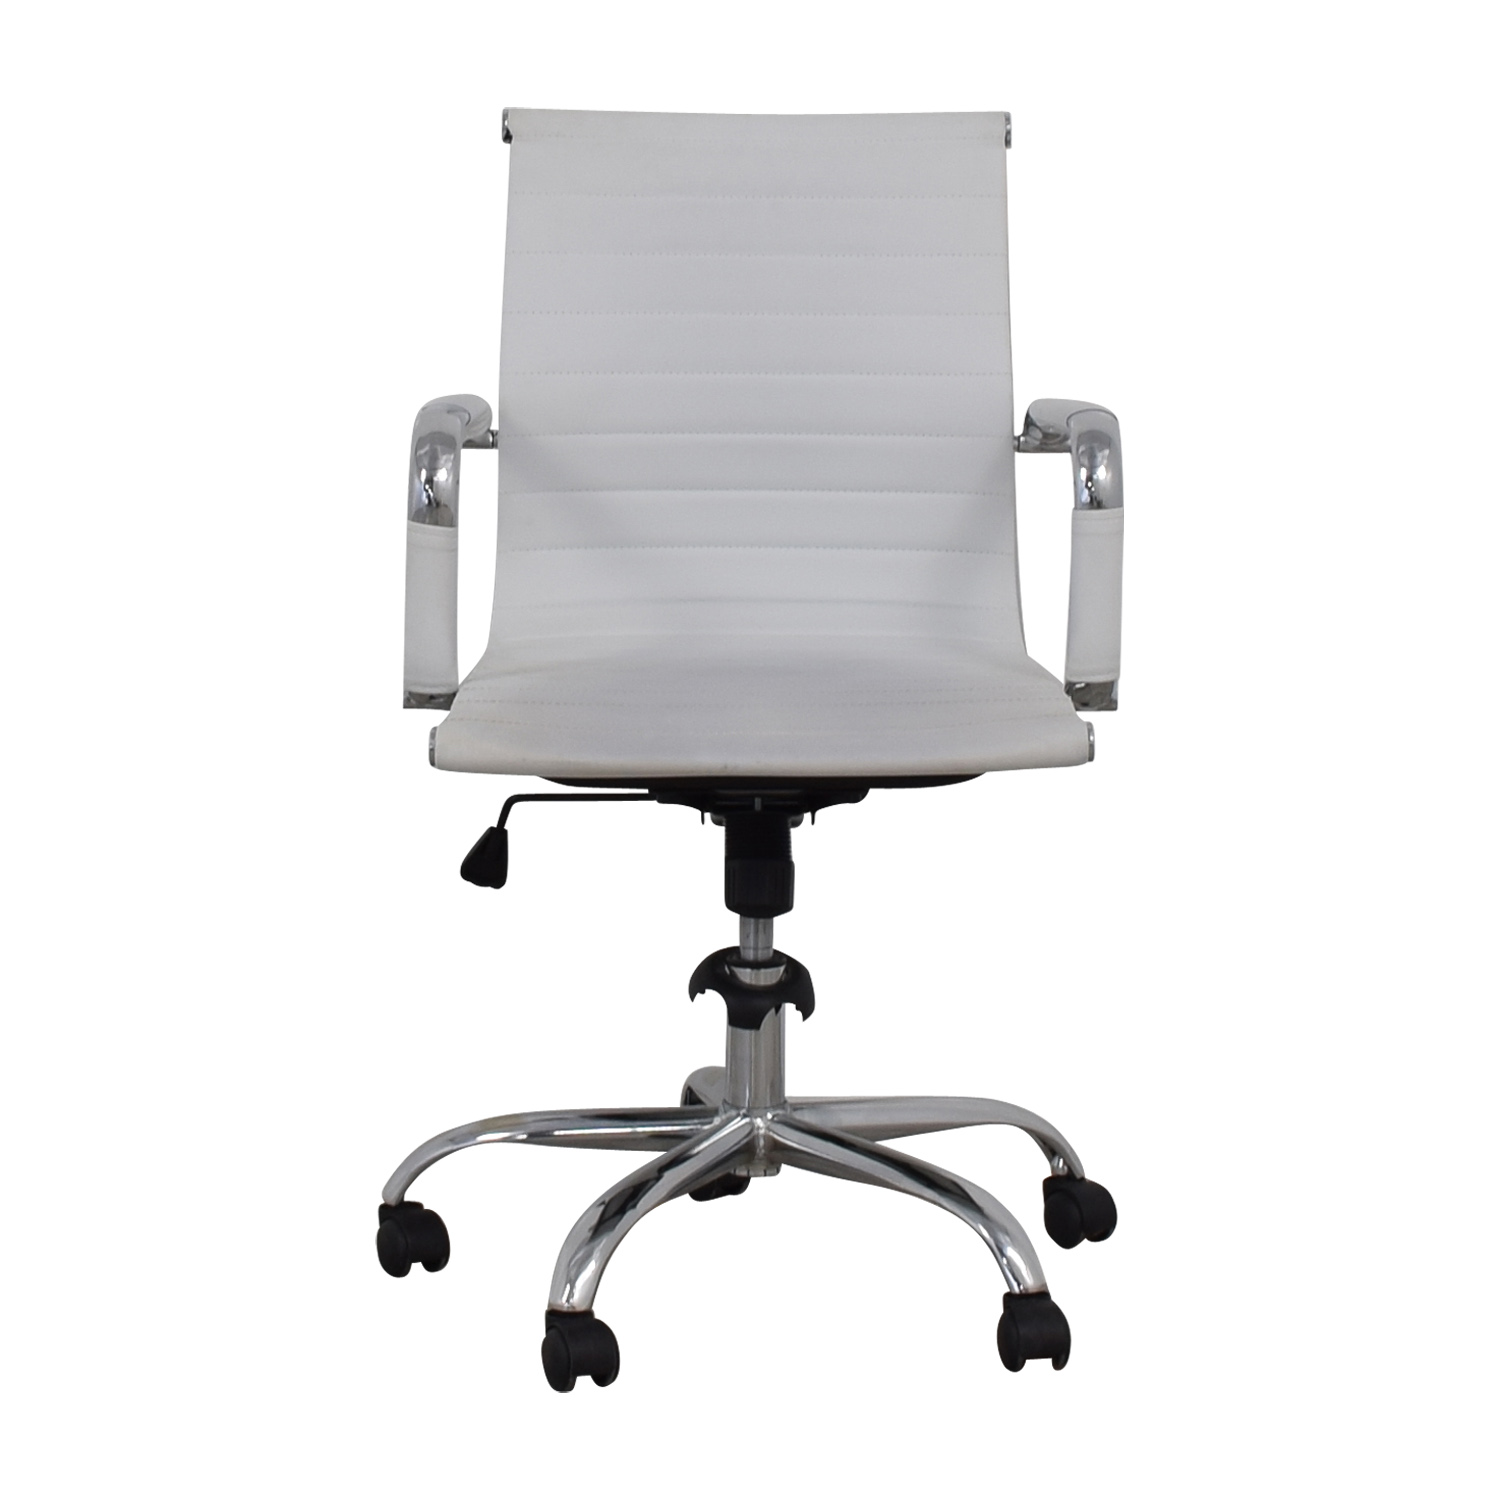 wayfair desk chairs eames chair reproduction 49 off alessandro discount